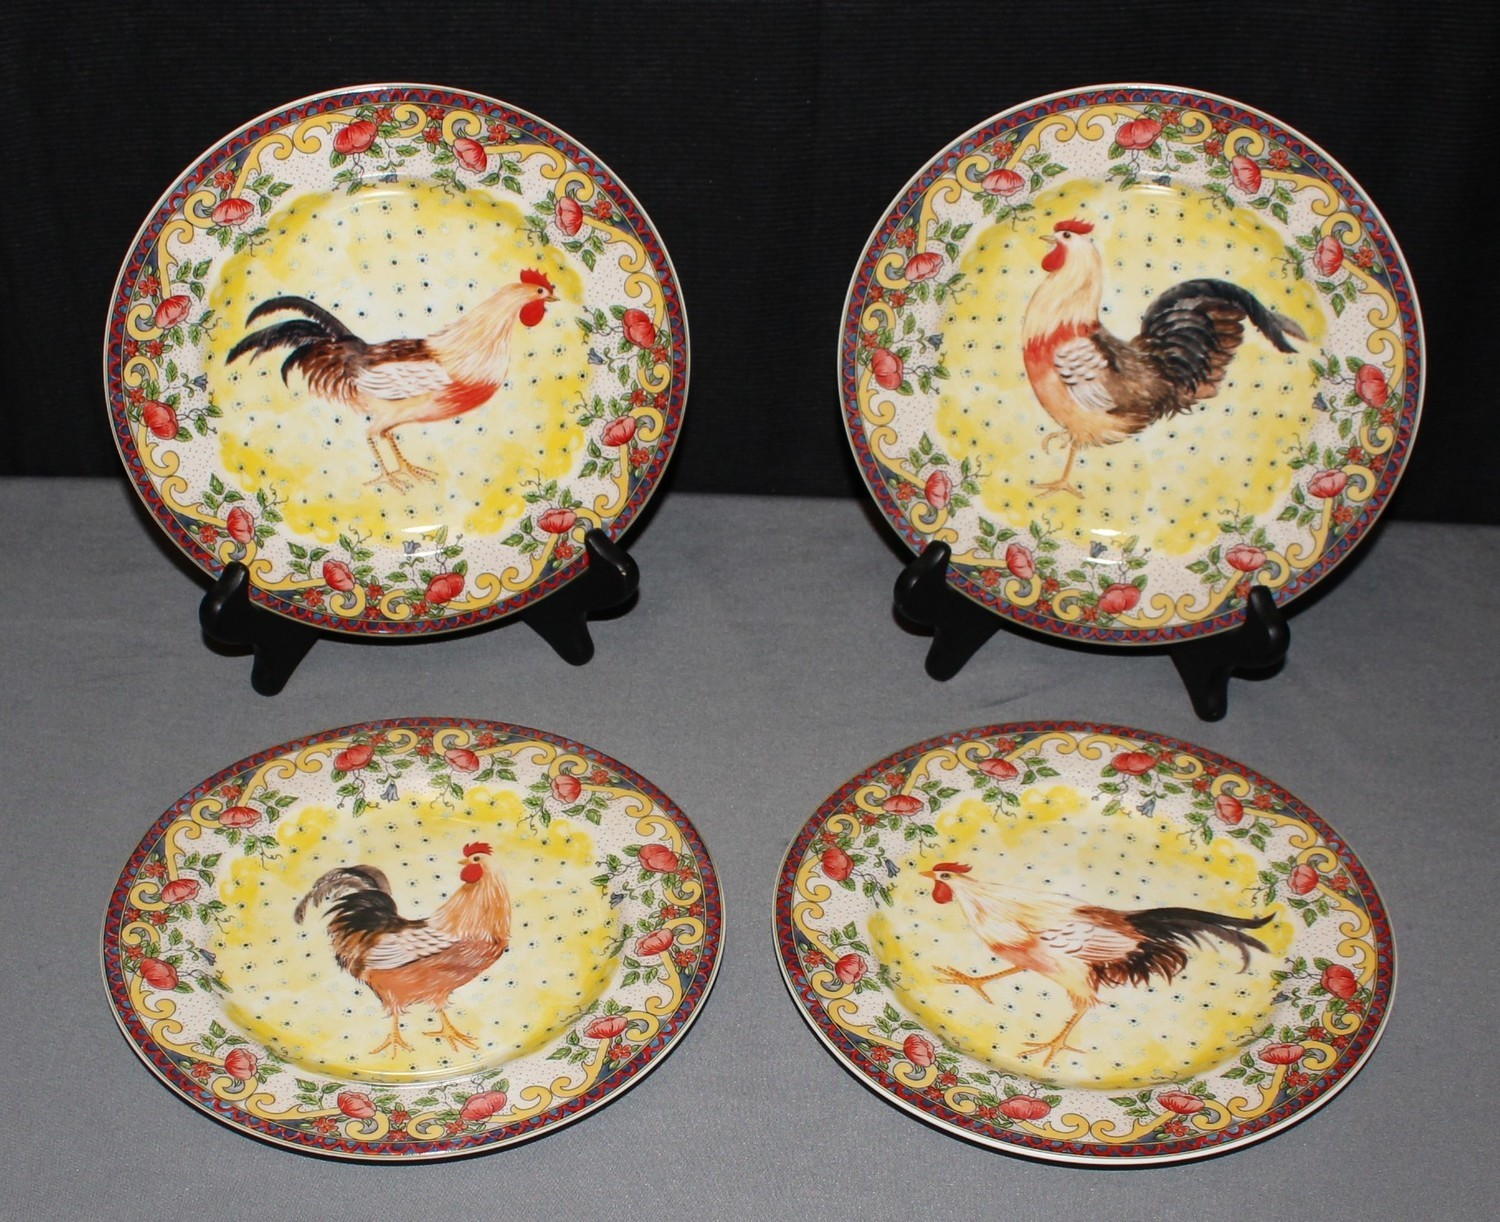 """American Atelier (Set of 4) Salad Plates """"Rooster Design"""" Petite Provence 5074"""